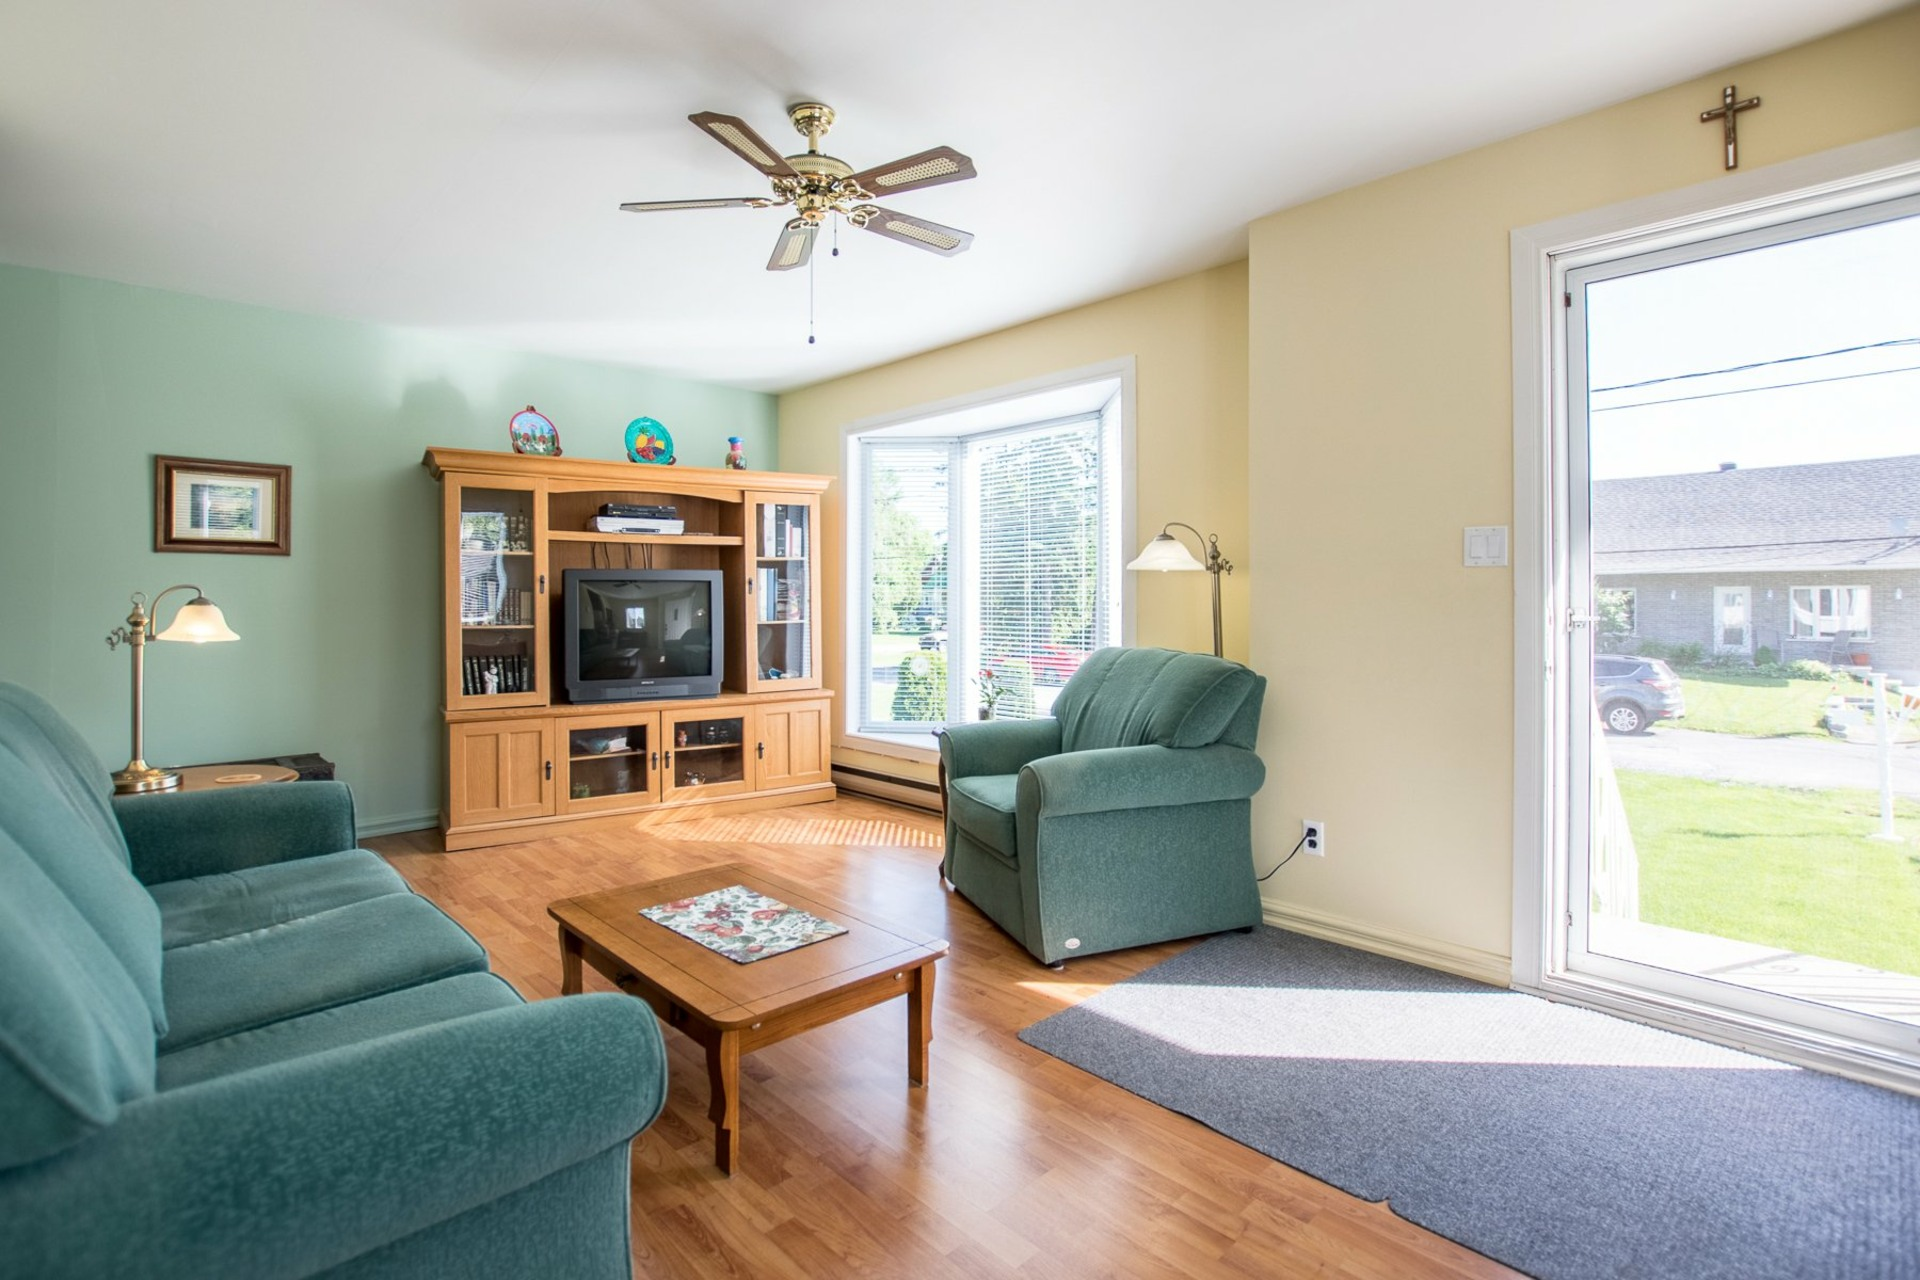 image 2 - House For sale Beauharnois - 9 rooms